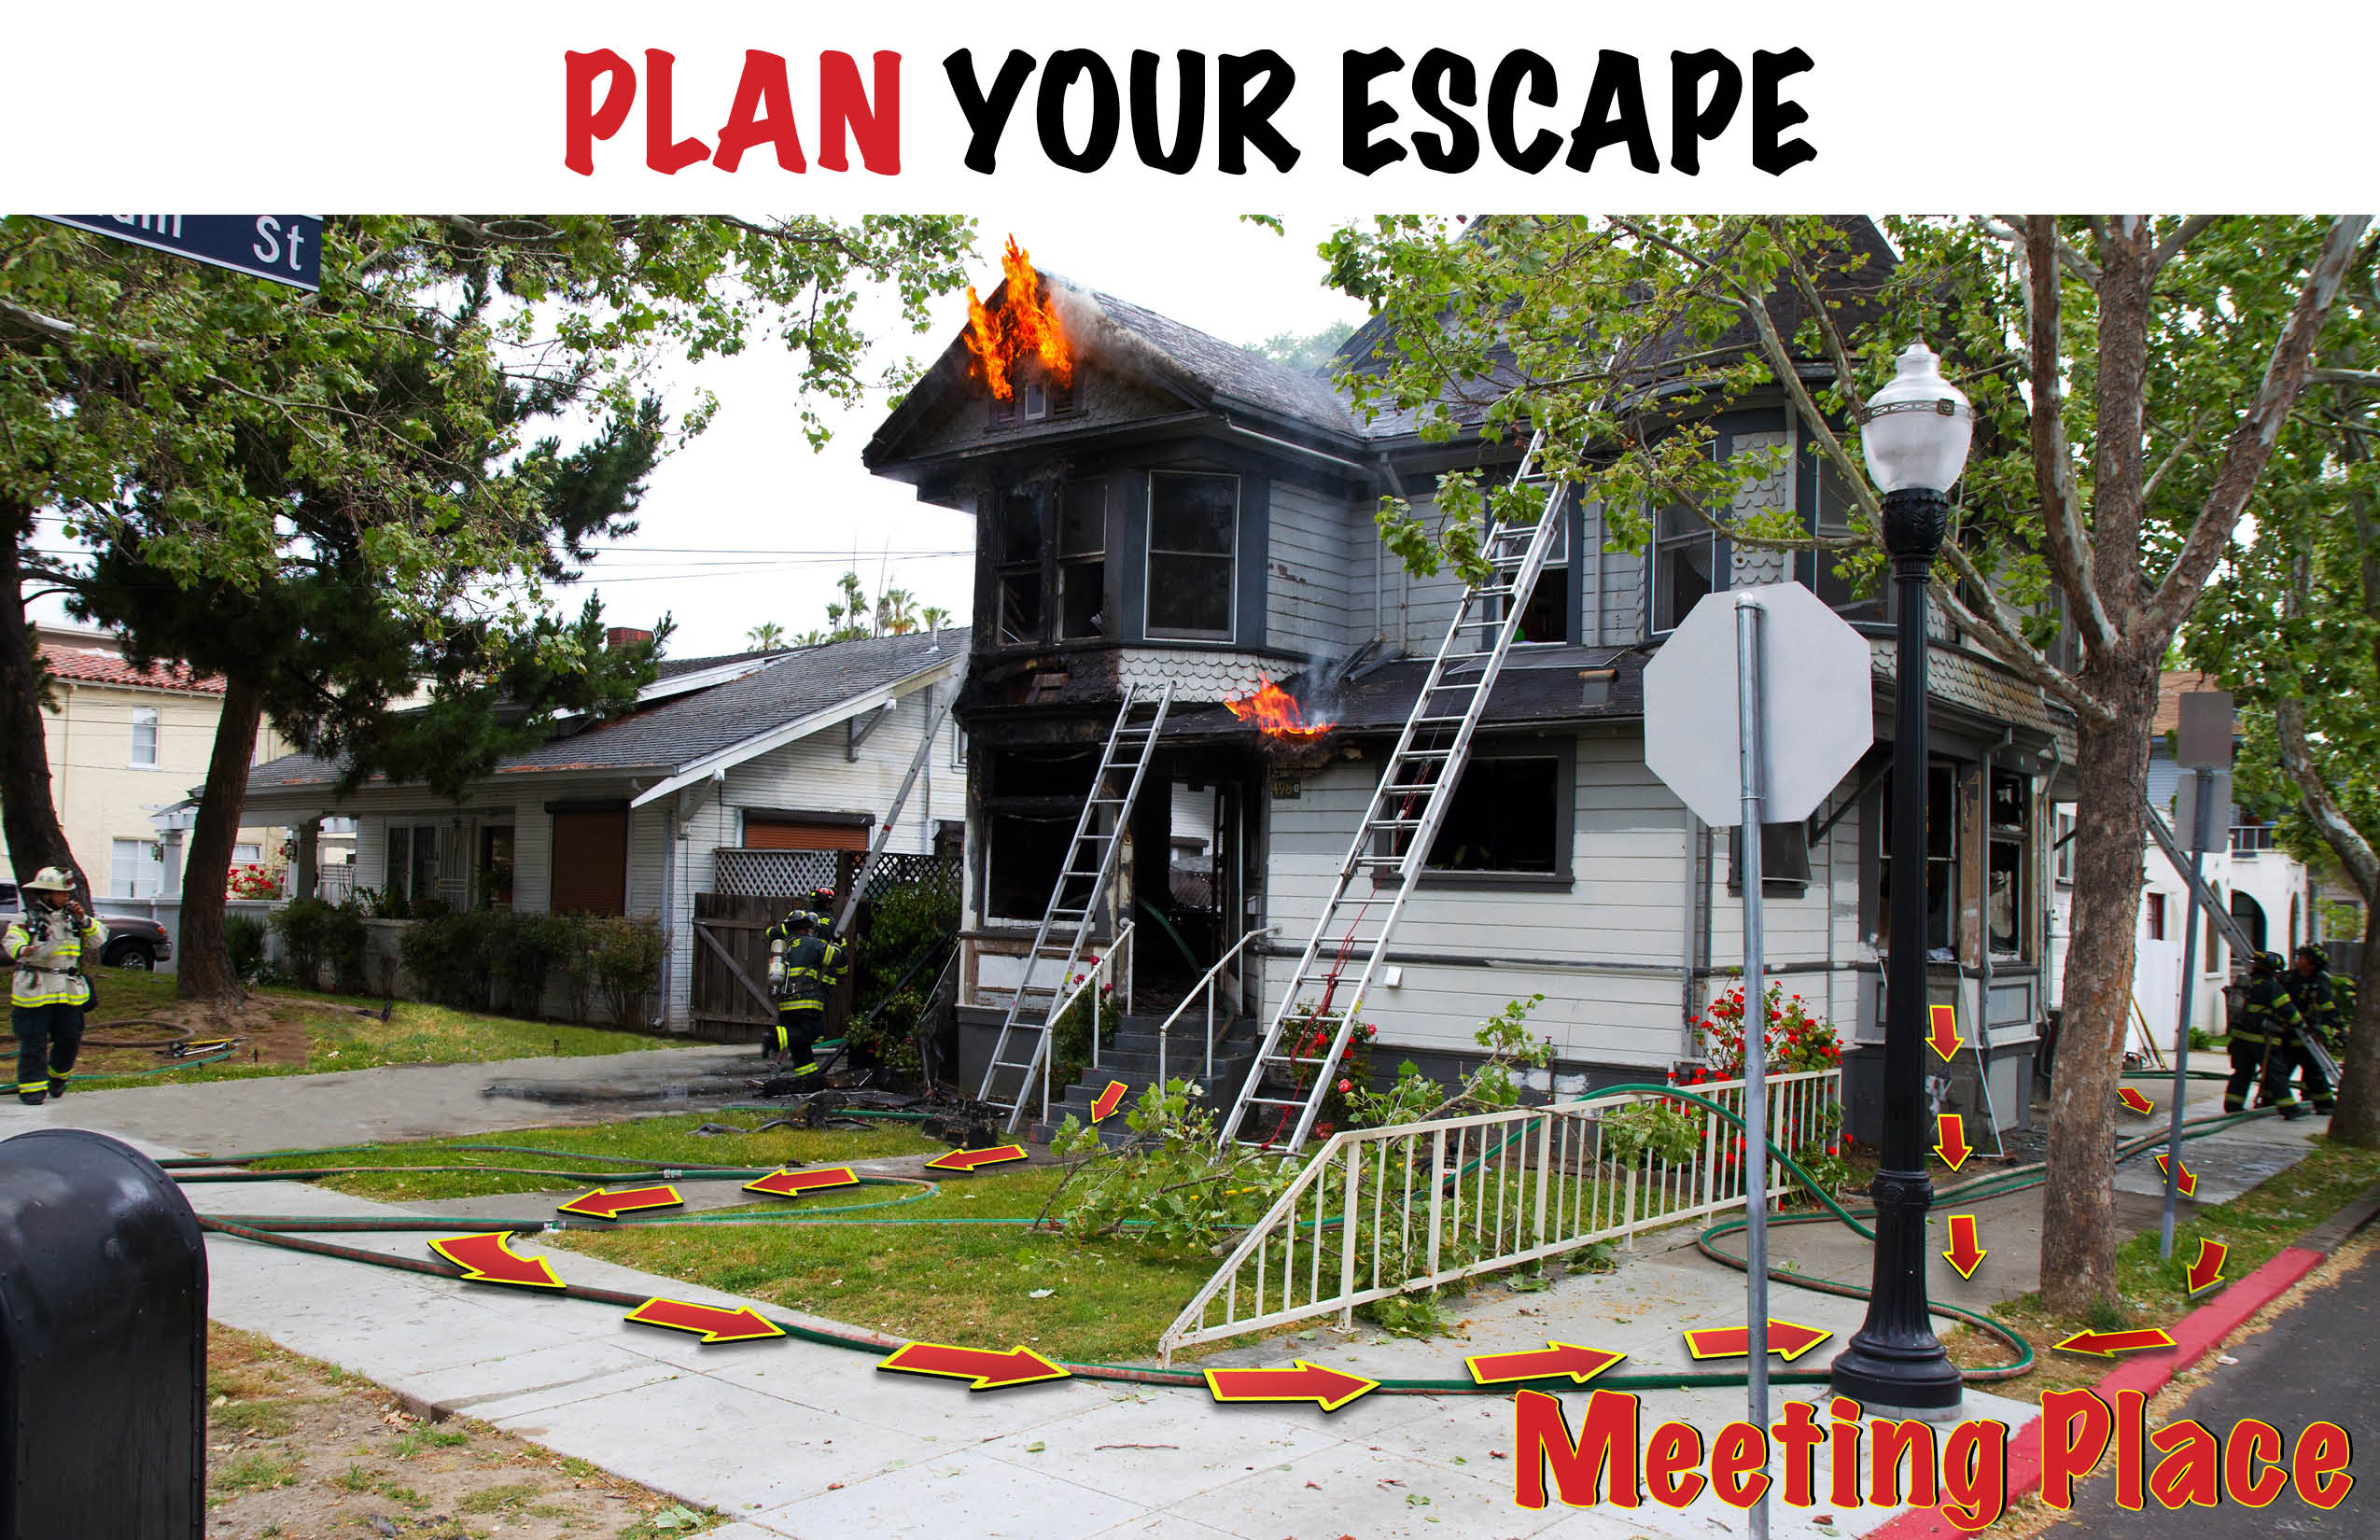 Home fire safety santa clara county fire department Home fire safety plan